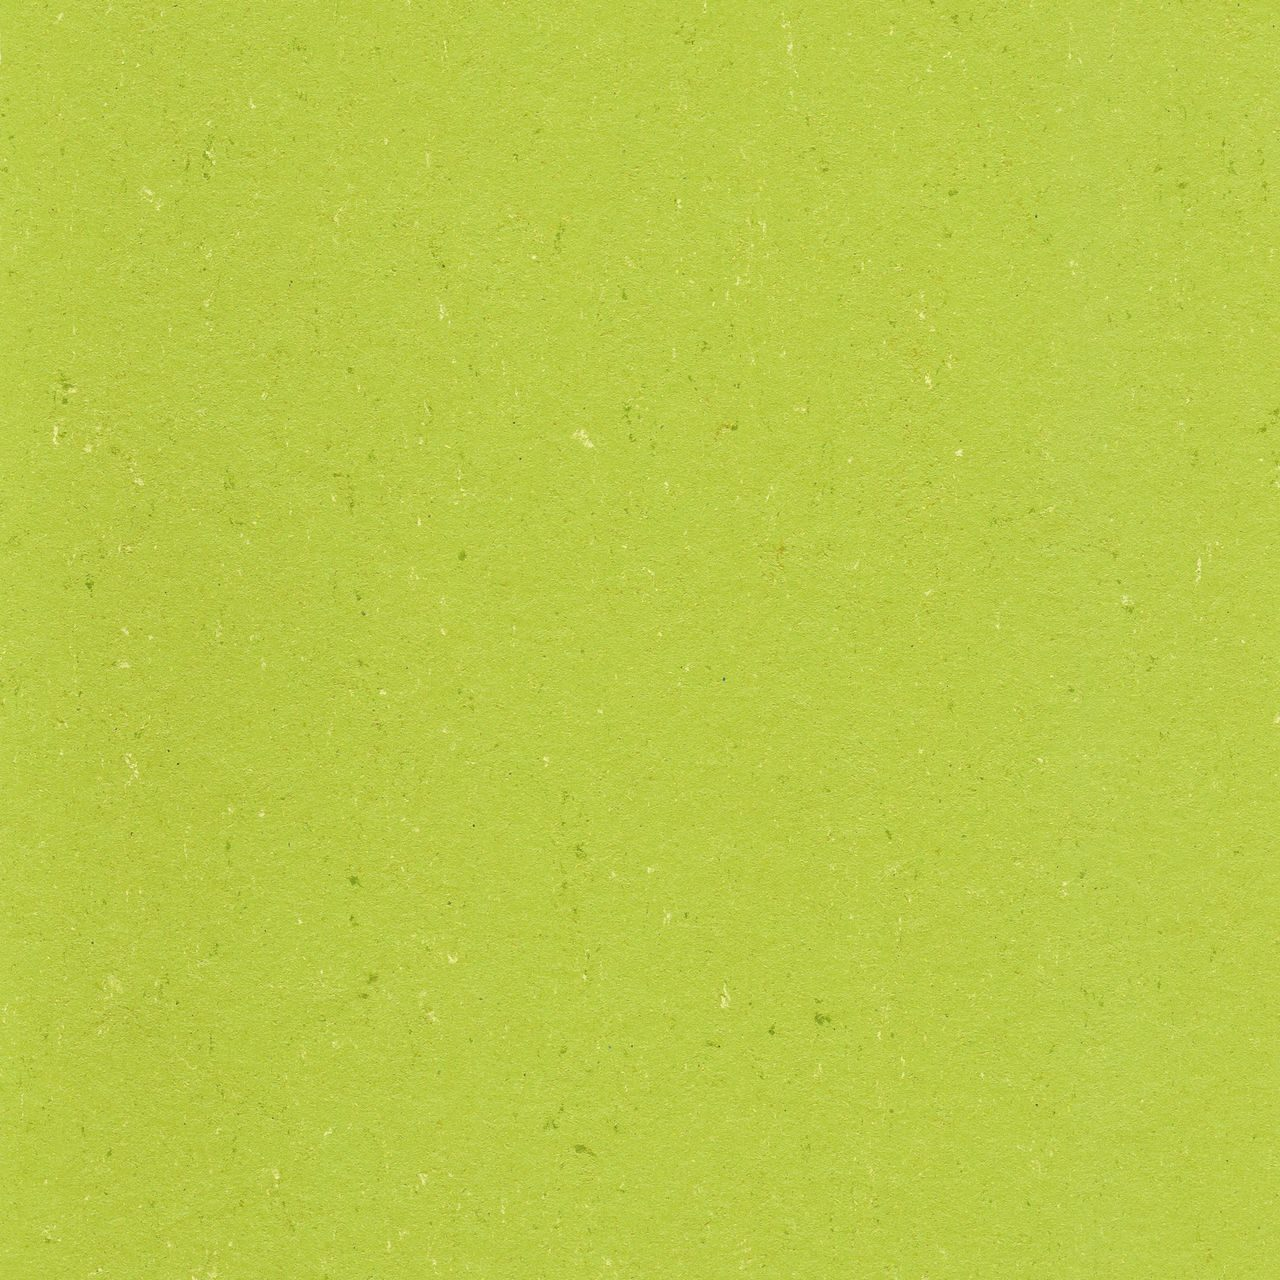 Colorette LPX/PUR 131-132 - lime green